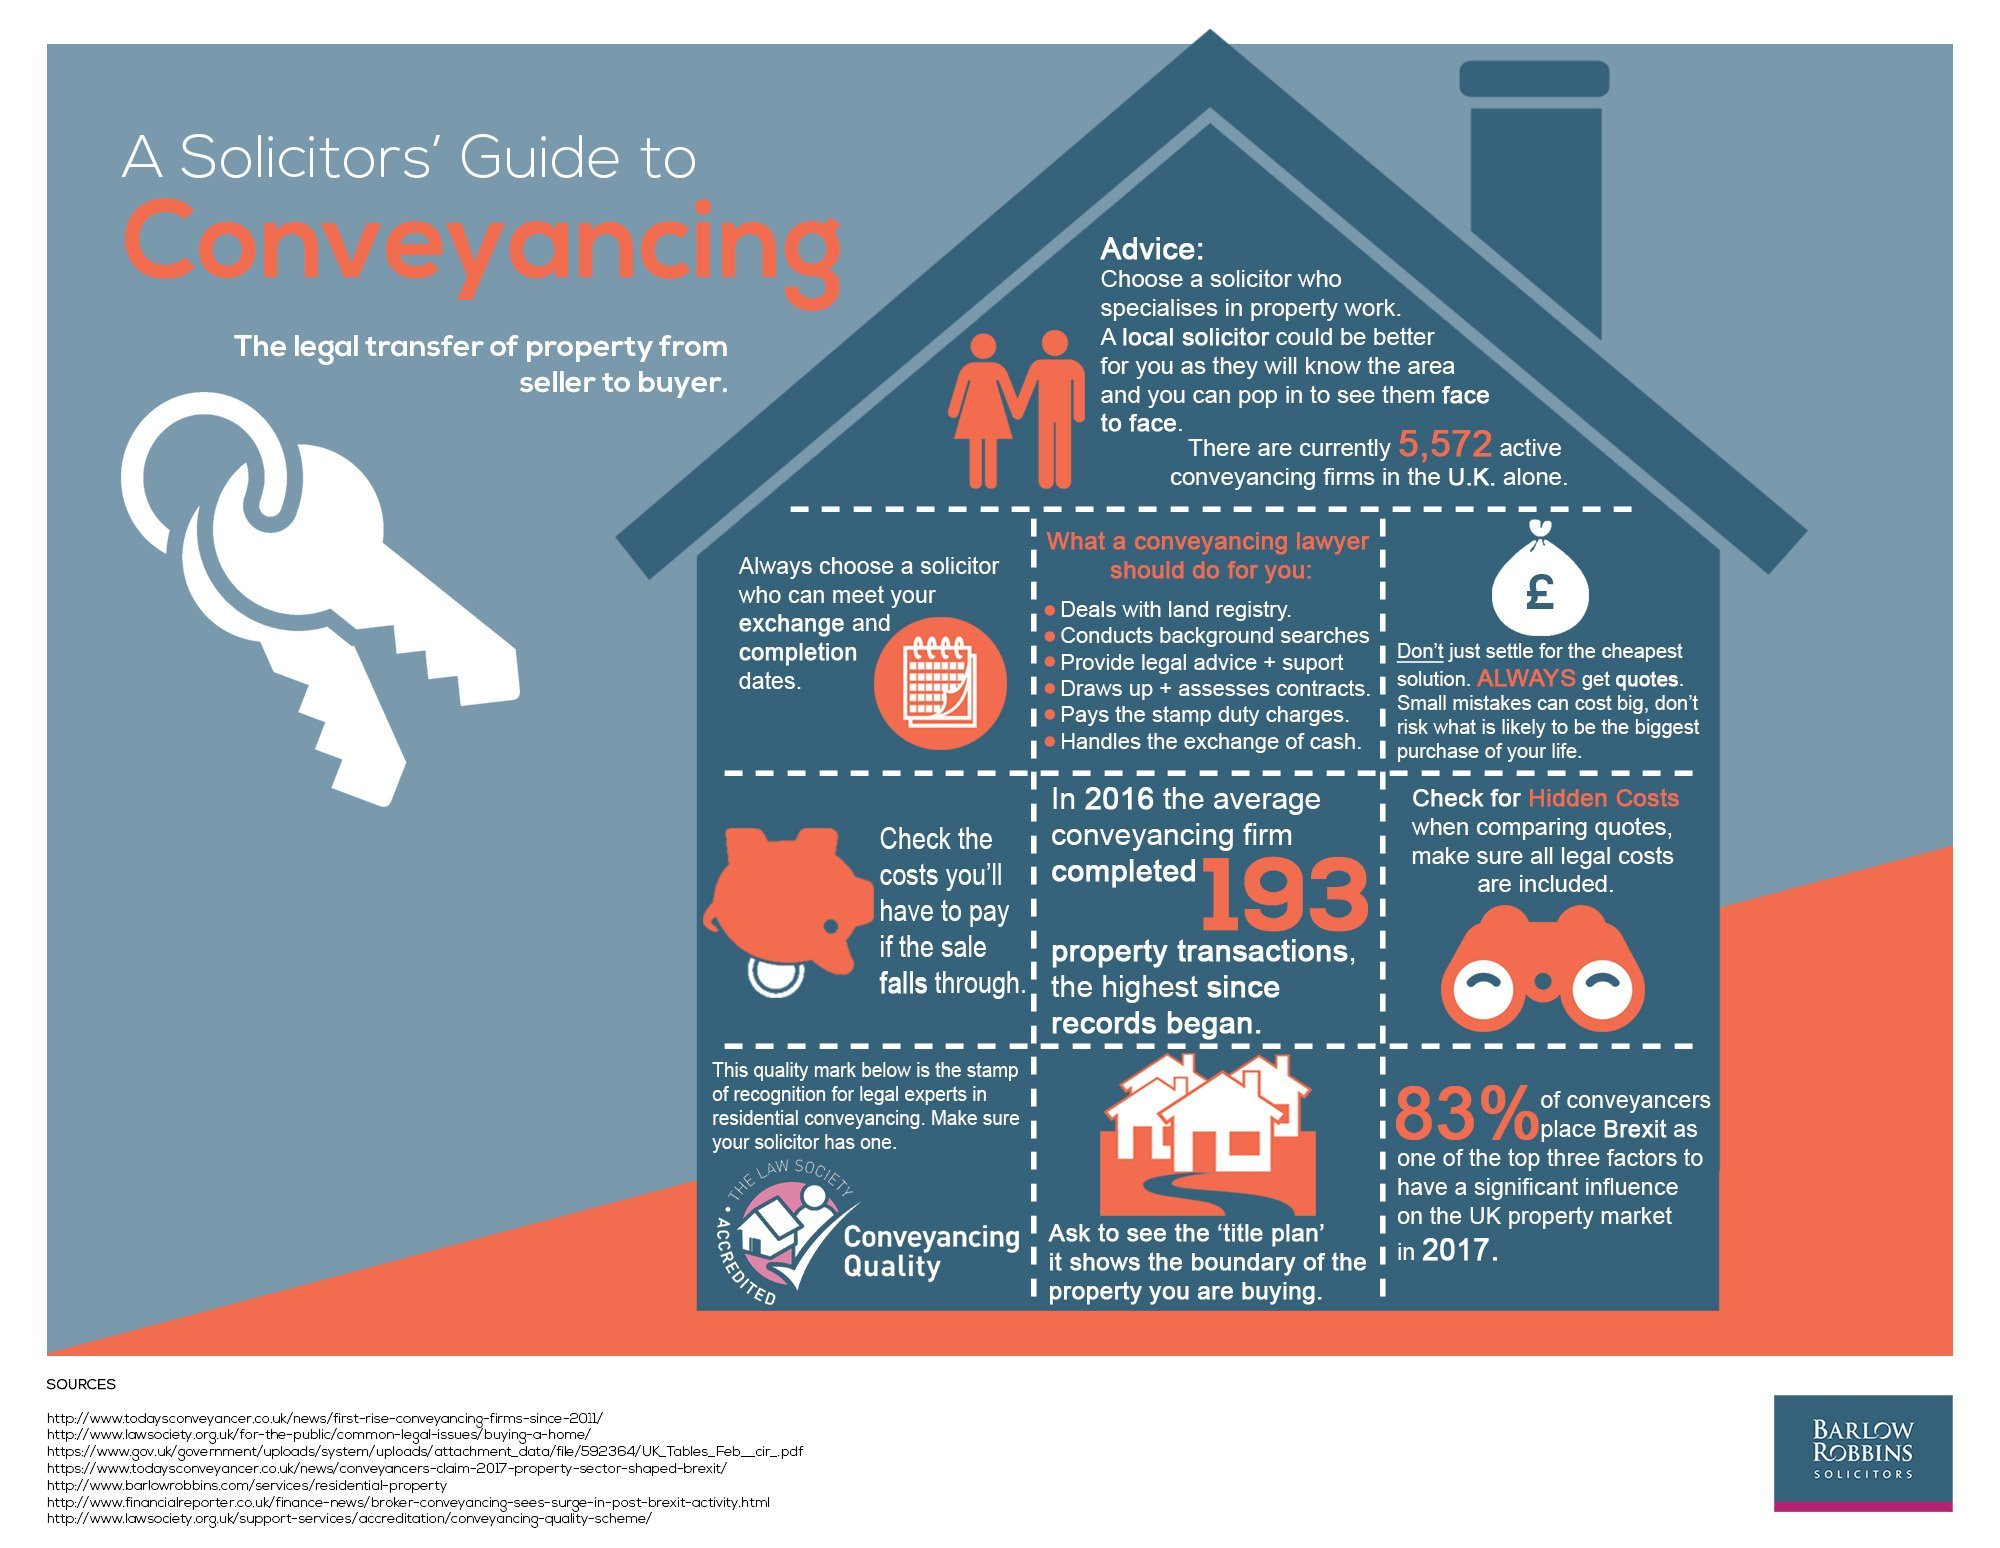 A Solicitor's Guide to Conveyancing